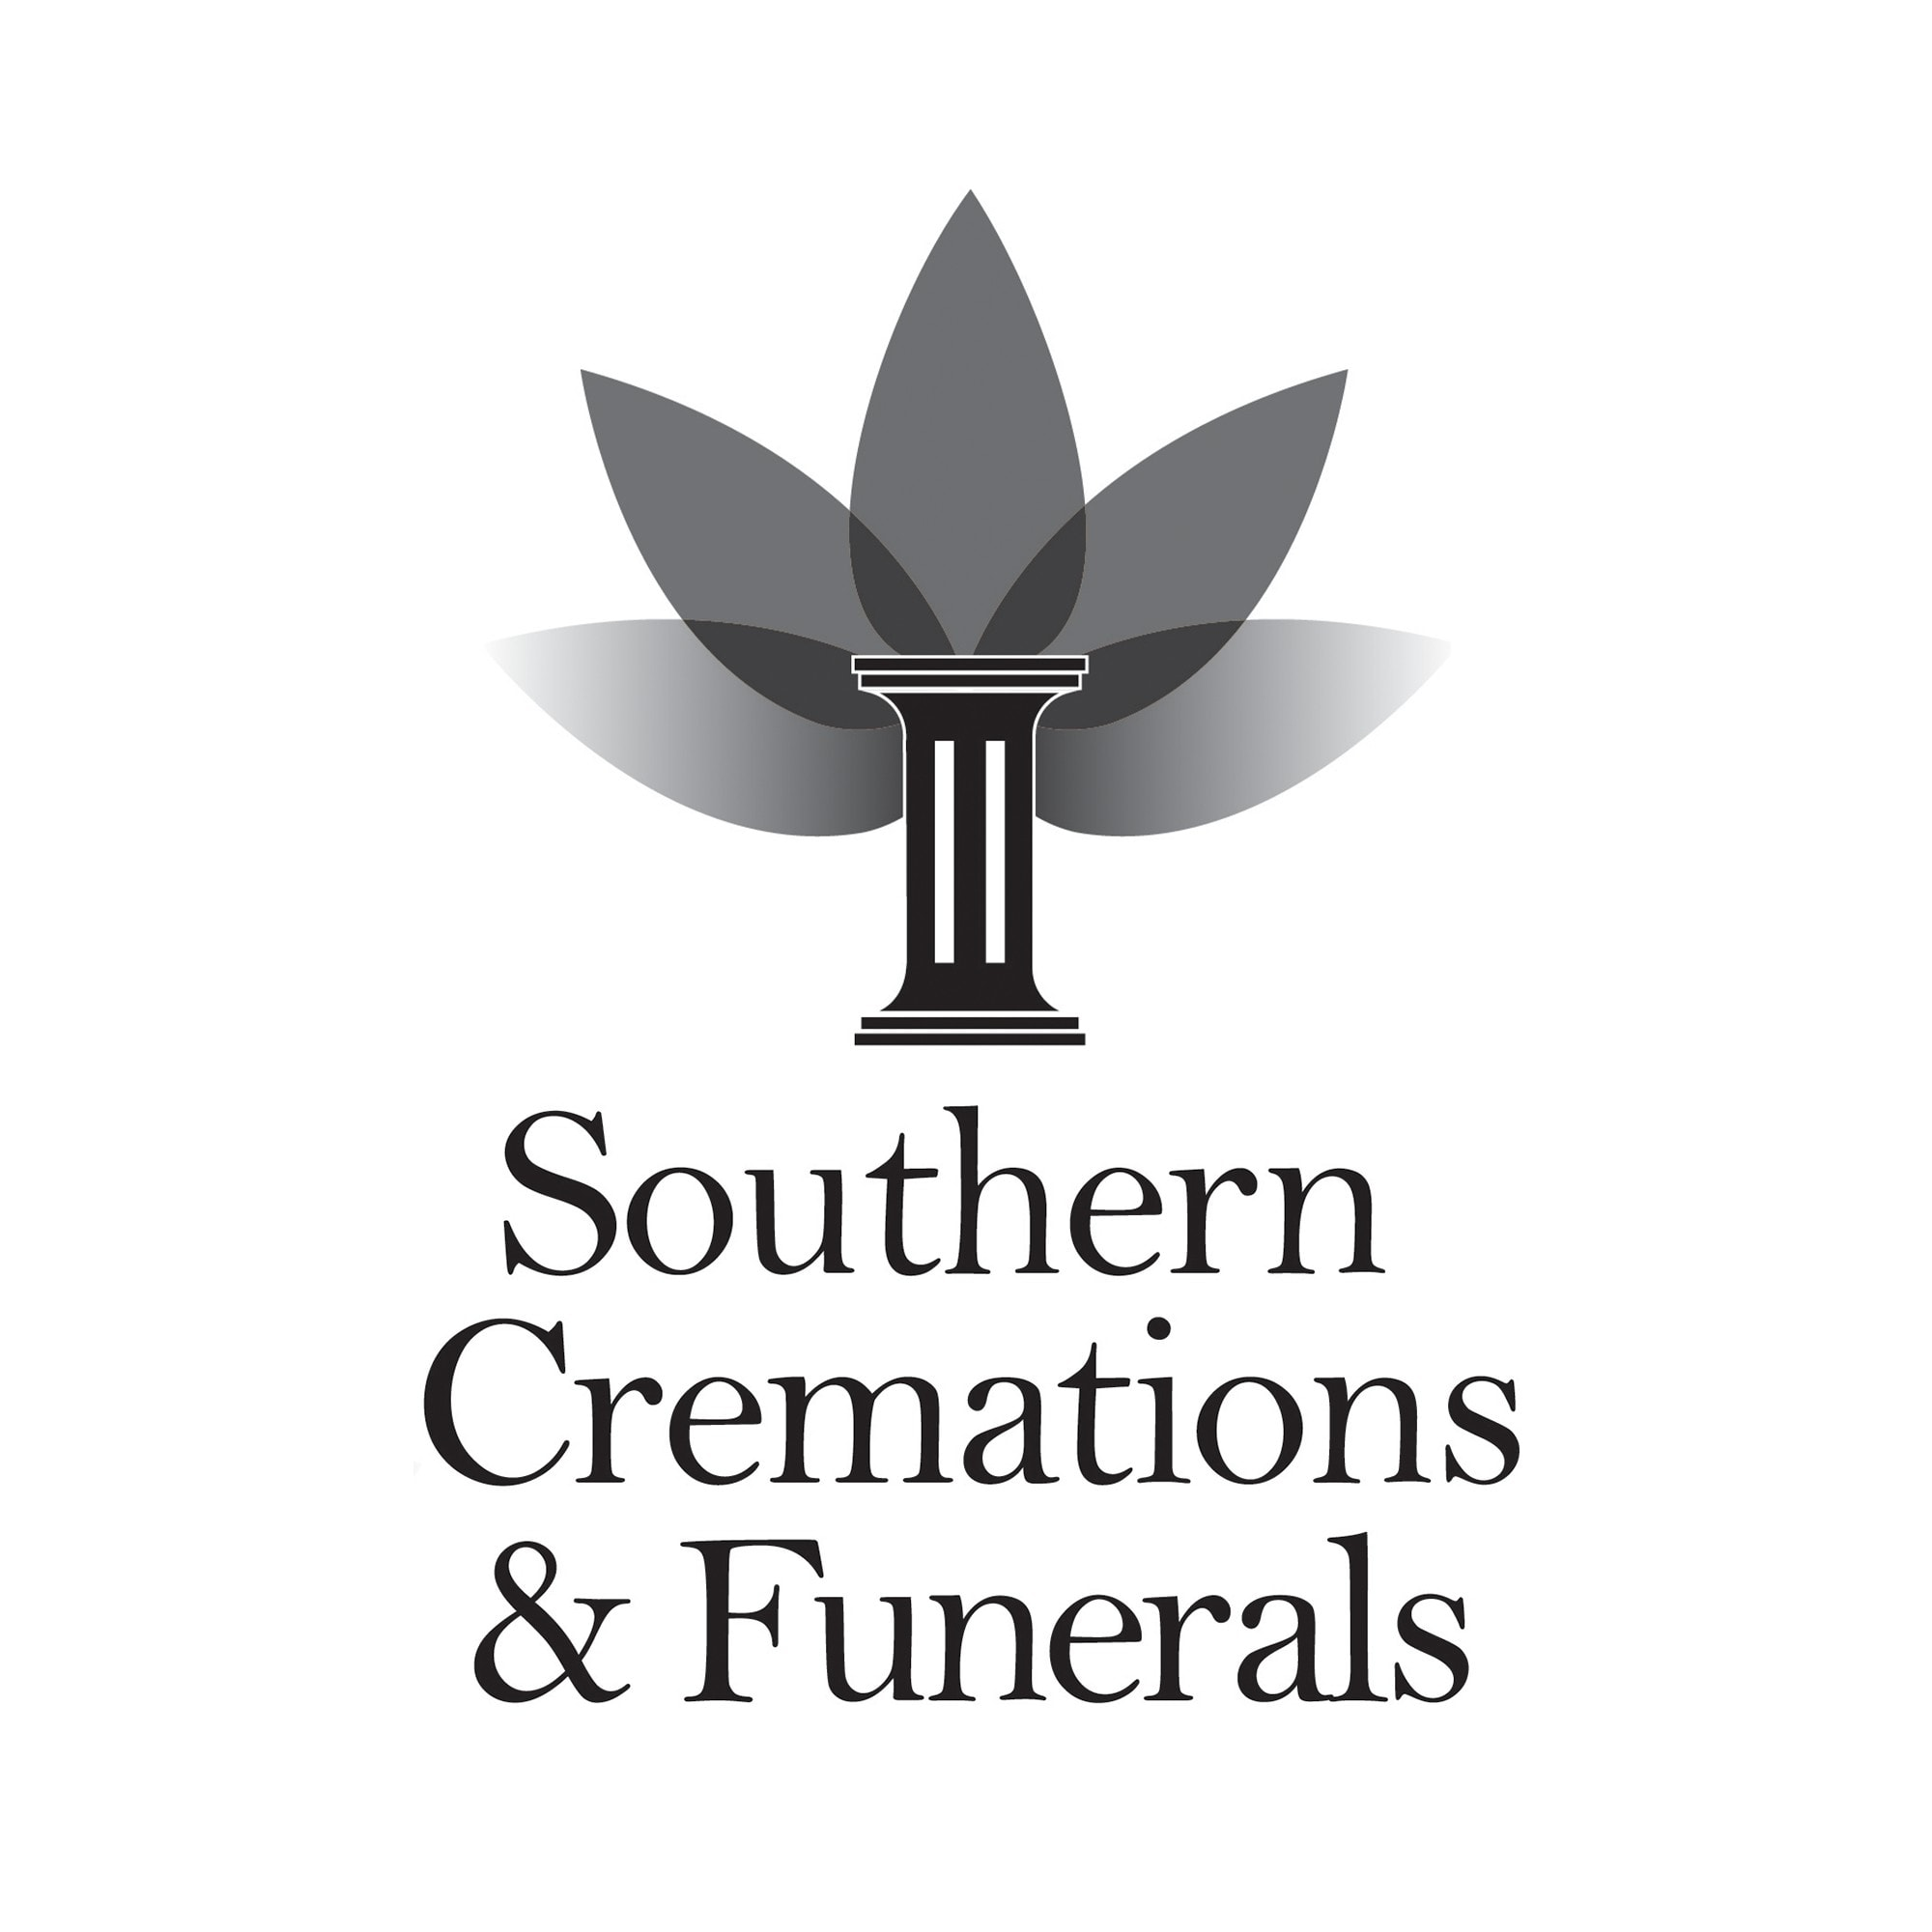 Southern Cremation & Funerals Logo